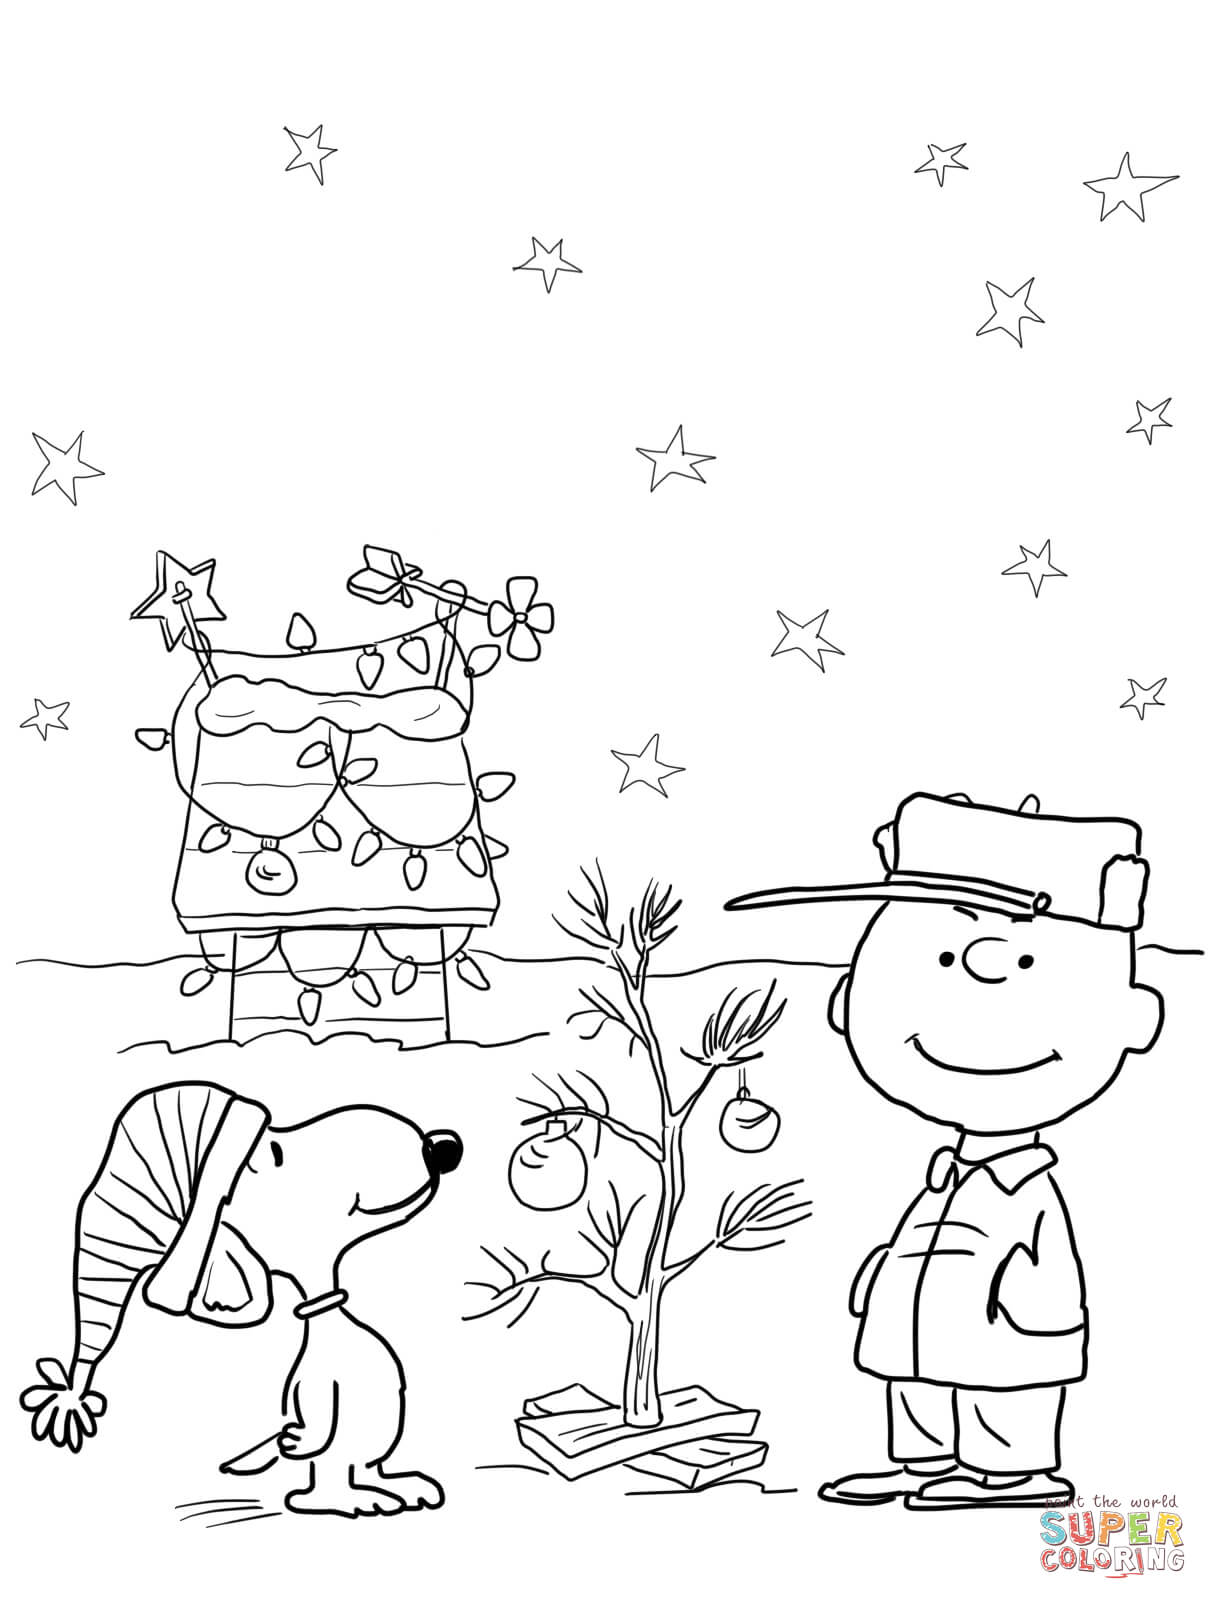 1208x1600 Snoopy Xmas Coloring Pages Snoopy Christmas Colouring Pages